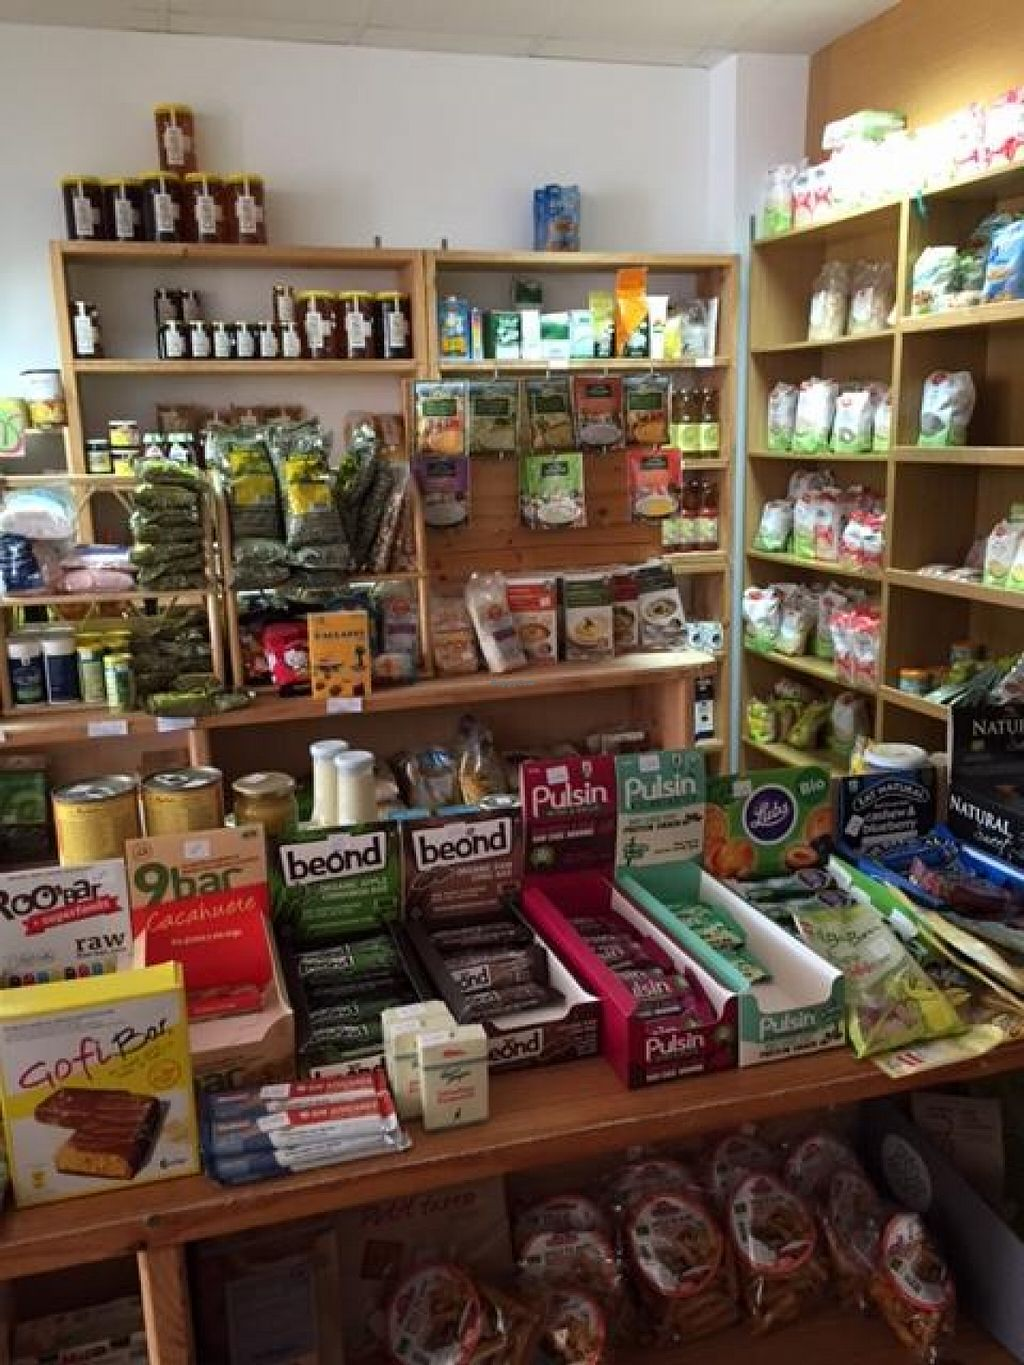 """Photo of Tienda Natural  by <a href=""""/members/profile/Take%20It%20Back"""">Take It Back</a> <br/>inside store <br/> September 18, 2015  - <a href='/contact/abuse/image/41286/118270'>Report</a>"""